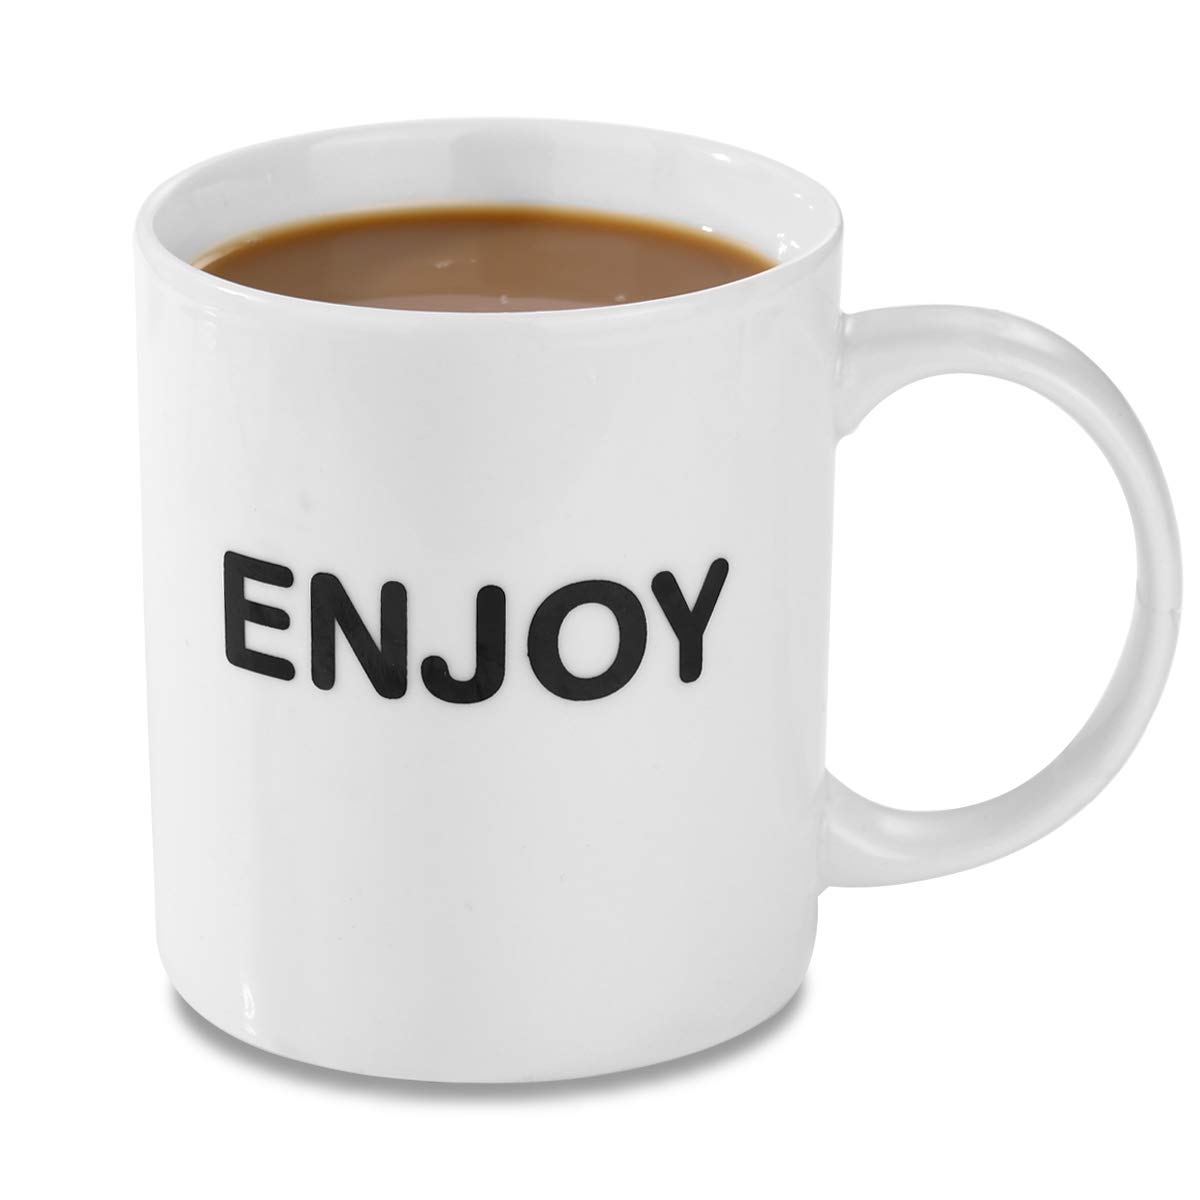 HANHAOPEAK Coffee Mug, 11oz Funny Coffee Mug: Enjoy, Unique Ceramic Novelty Holiday Christmas Hanukkah Gift for Men and Women Who Love Tea Mugs Coffee Cups, Suitable for Office and Home